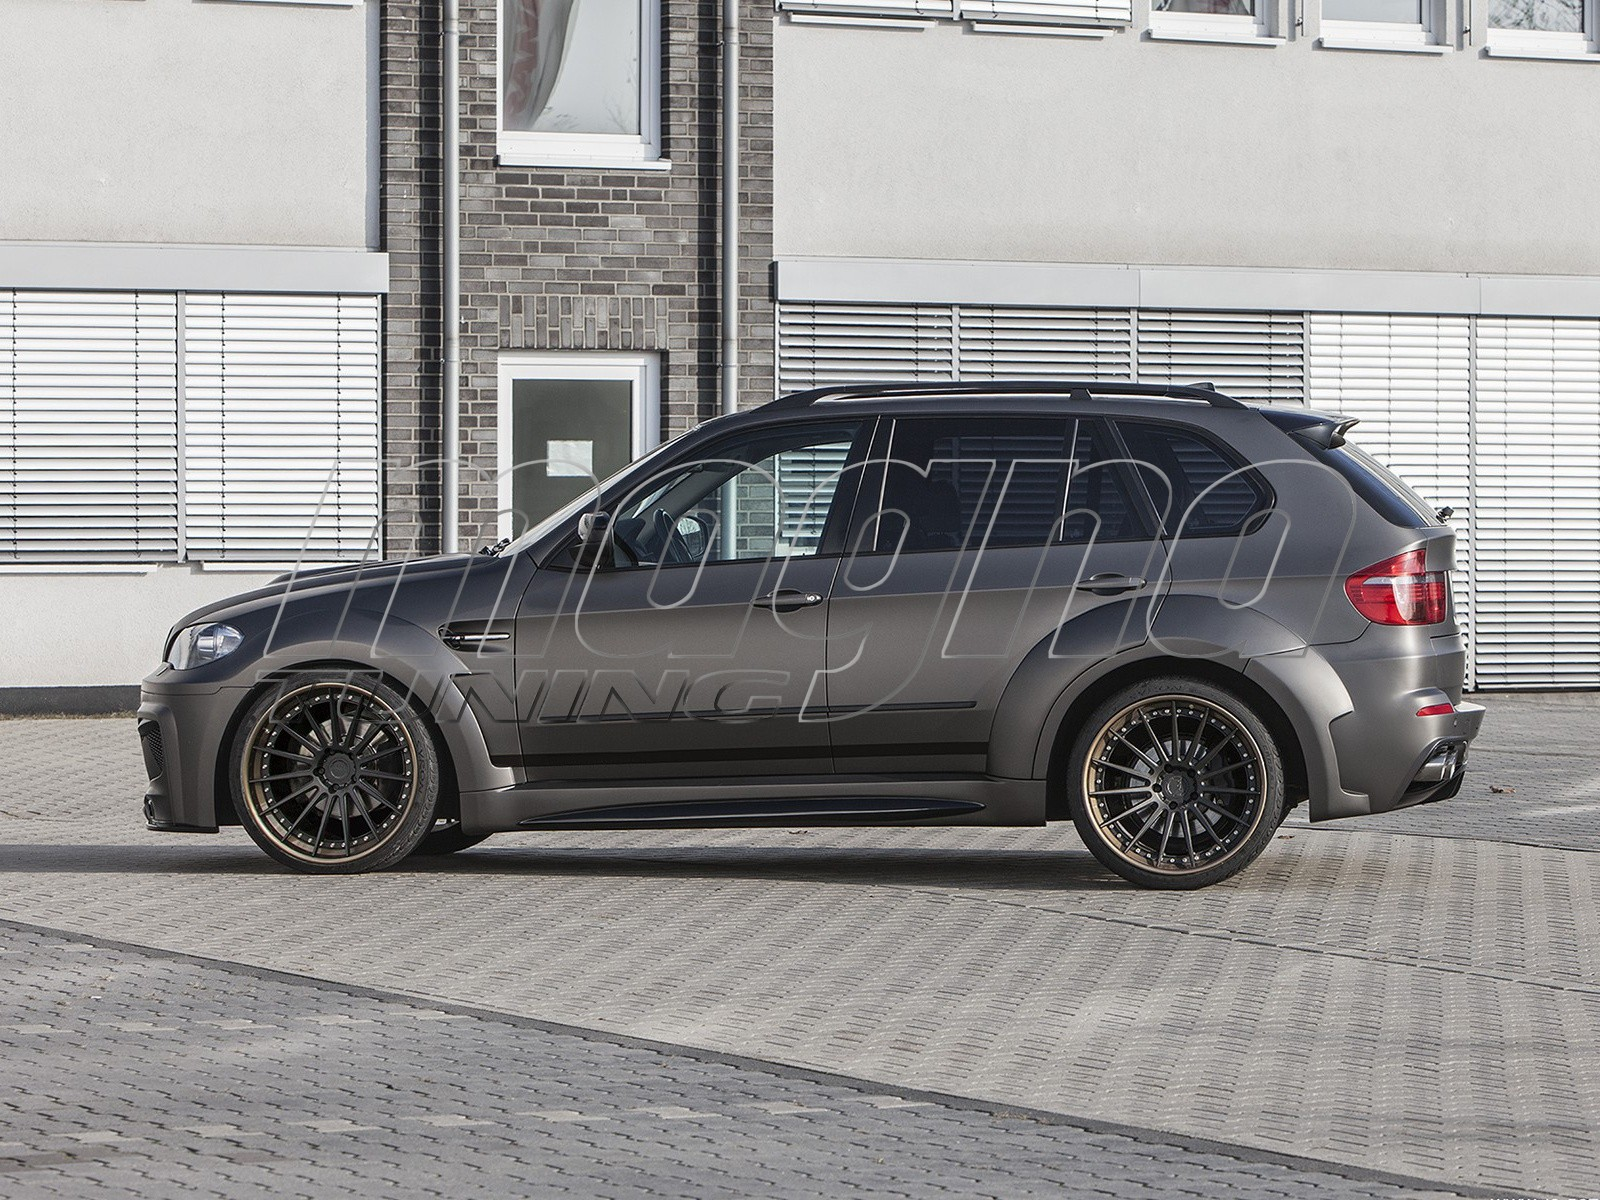 bmw e70 x5 proteus wide body kit. Black Bedroom Furniture Sets. Home Design Ideas